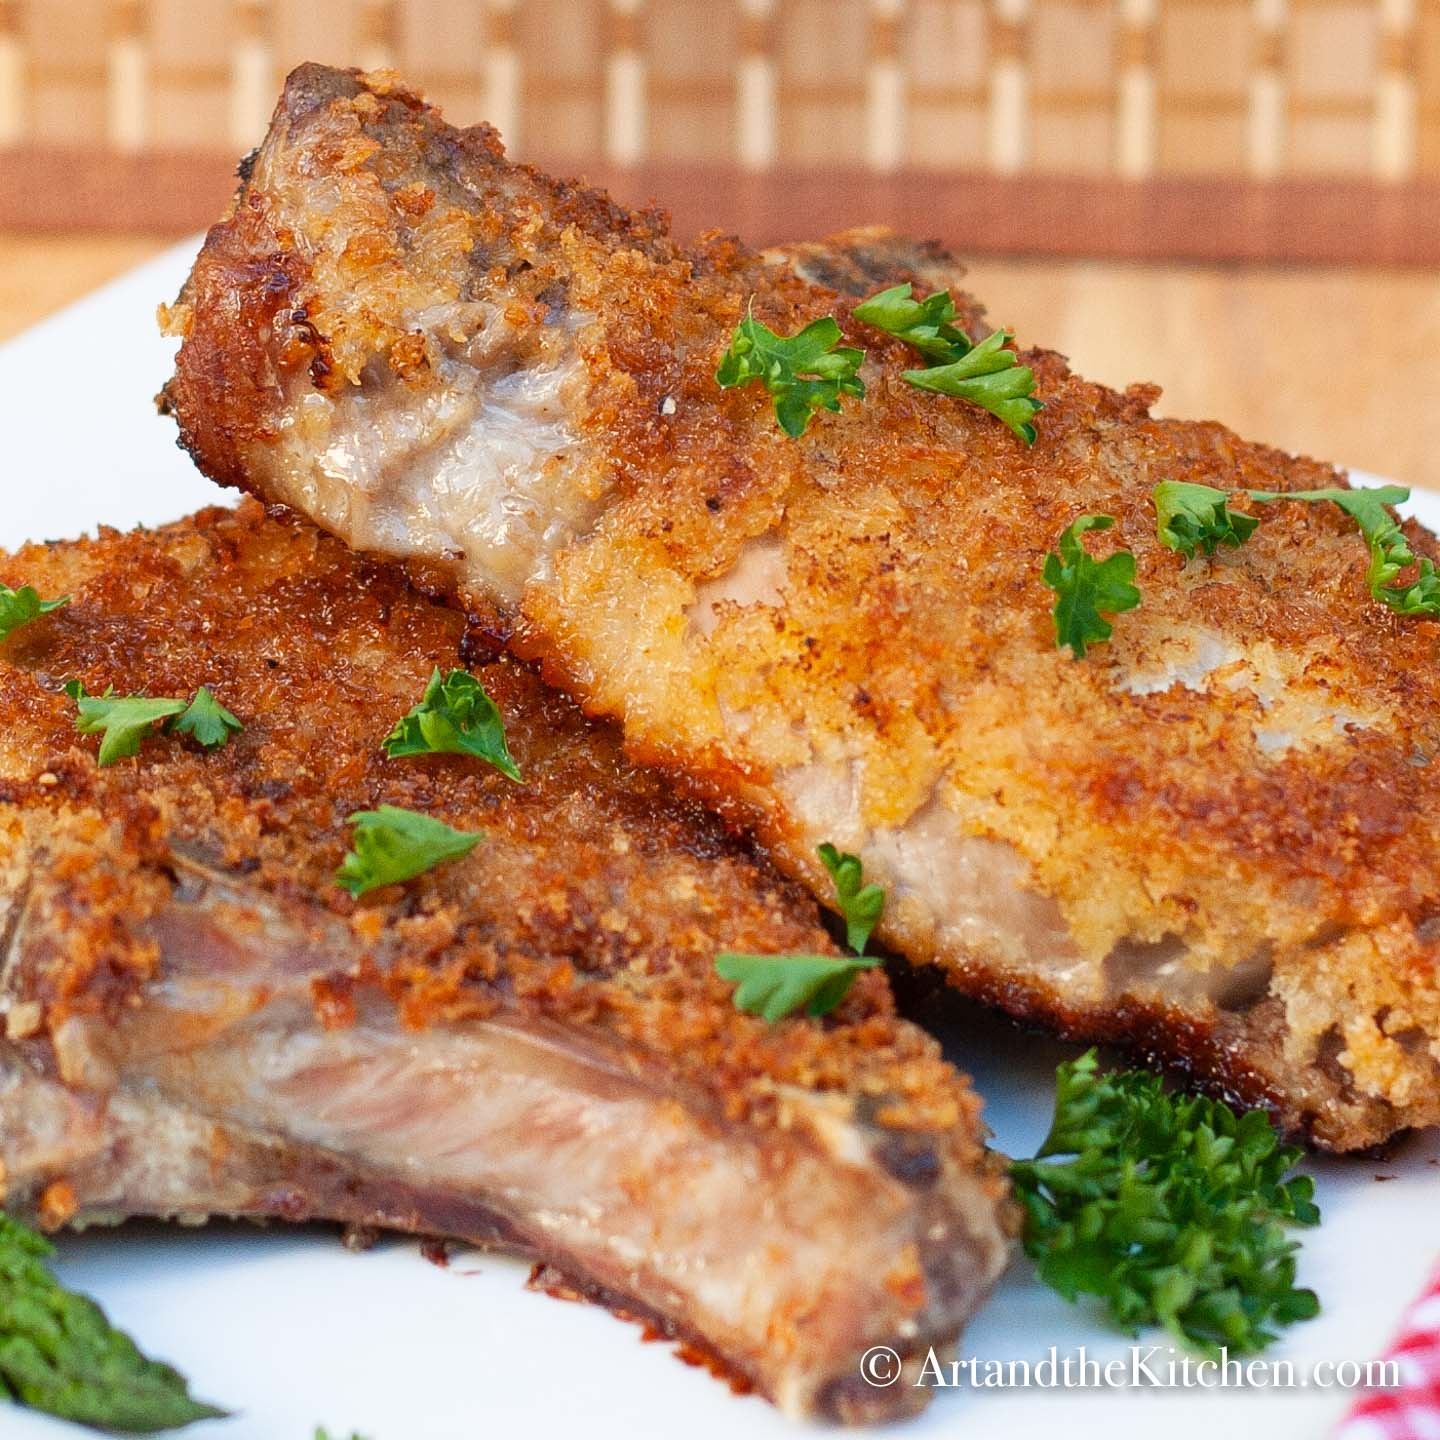 Two breaded pork chops fried golden brown on white plate.